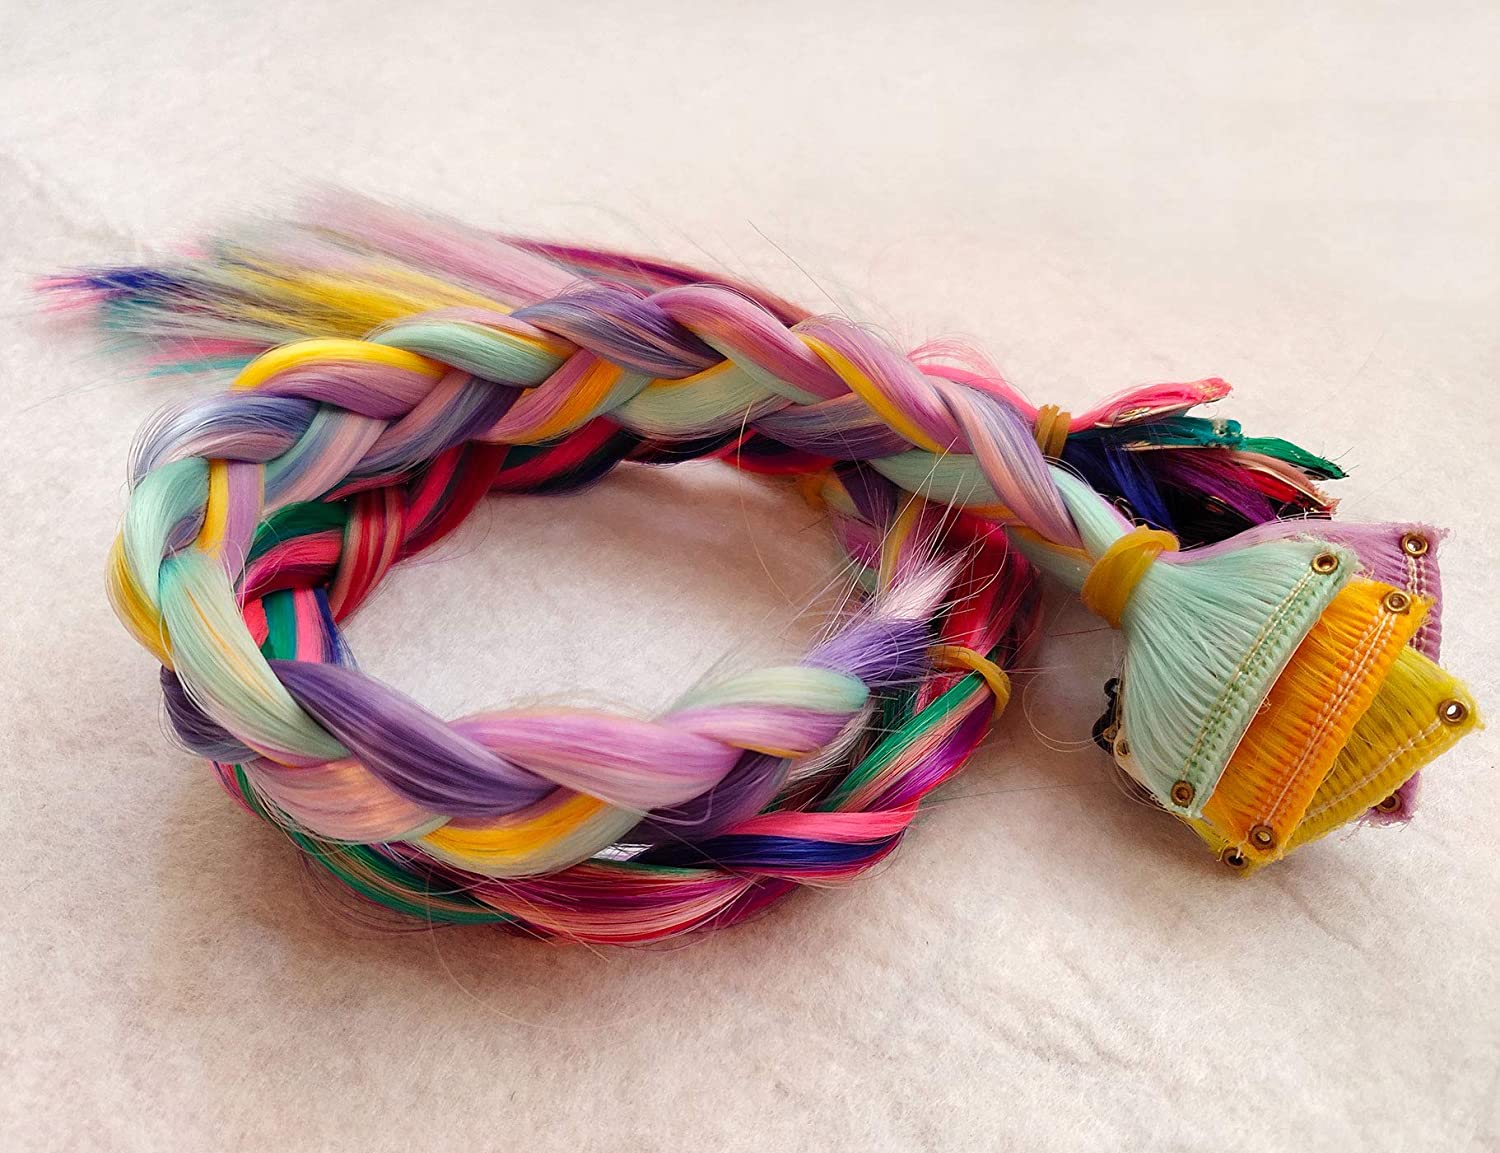 BINIHA Fashion Girls Hair Accessories Clip in//On Colored Hair Extension for Amercian Girls and Dolls Party Hihlights